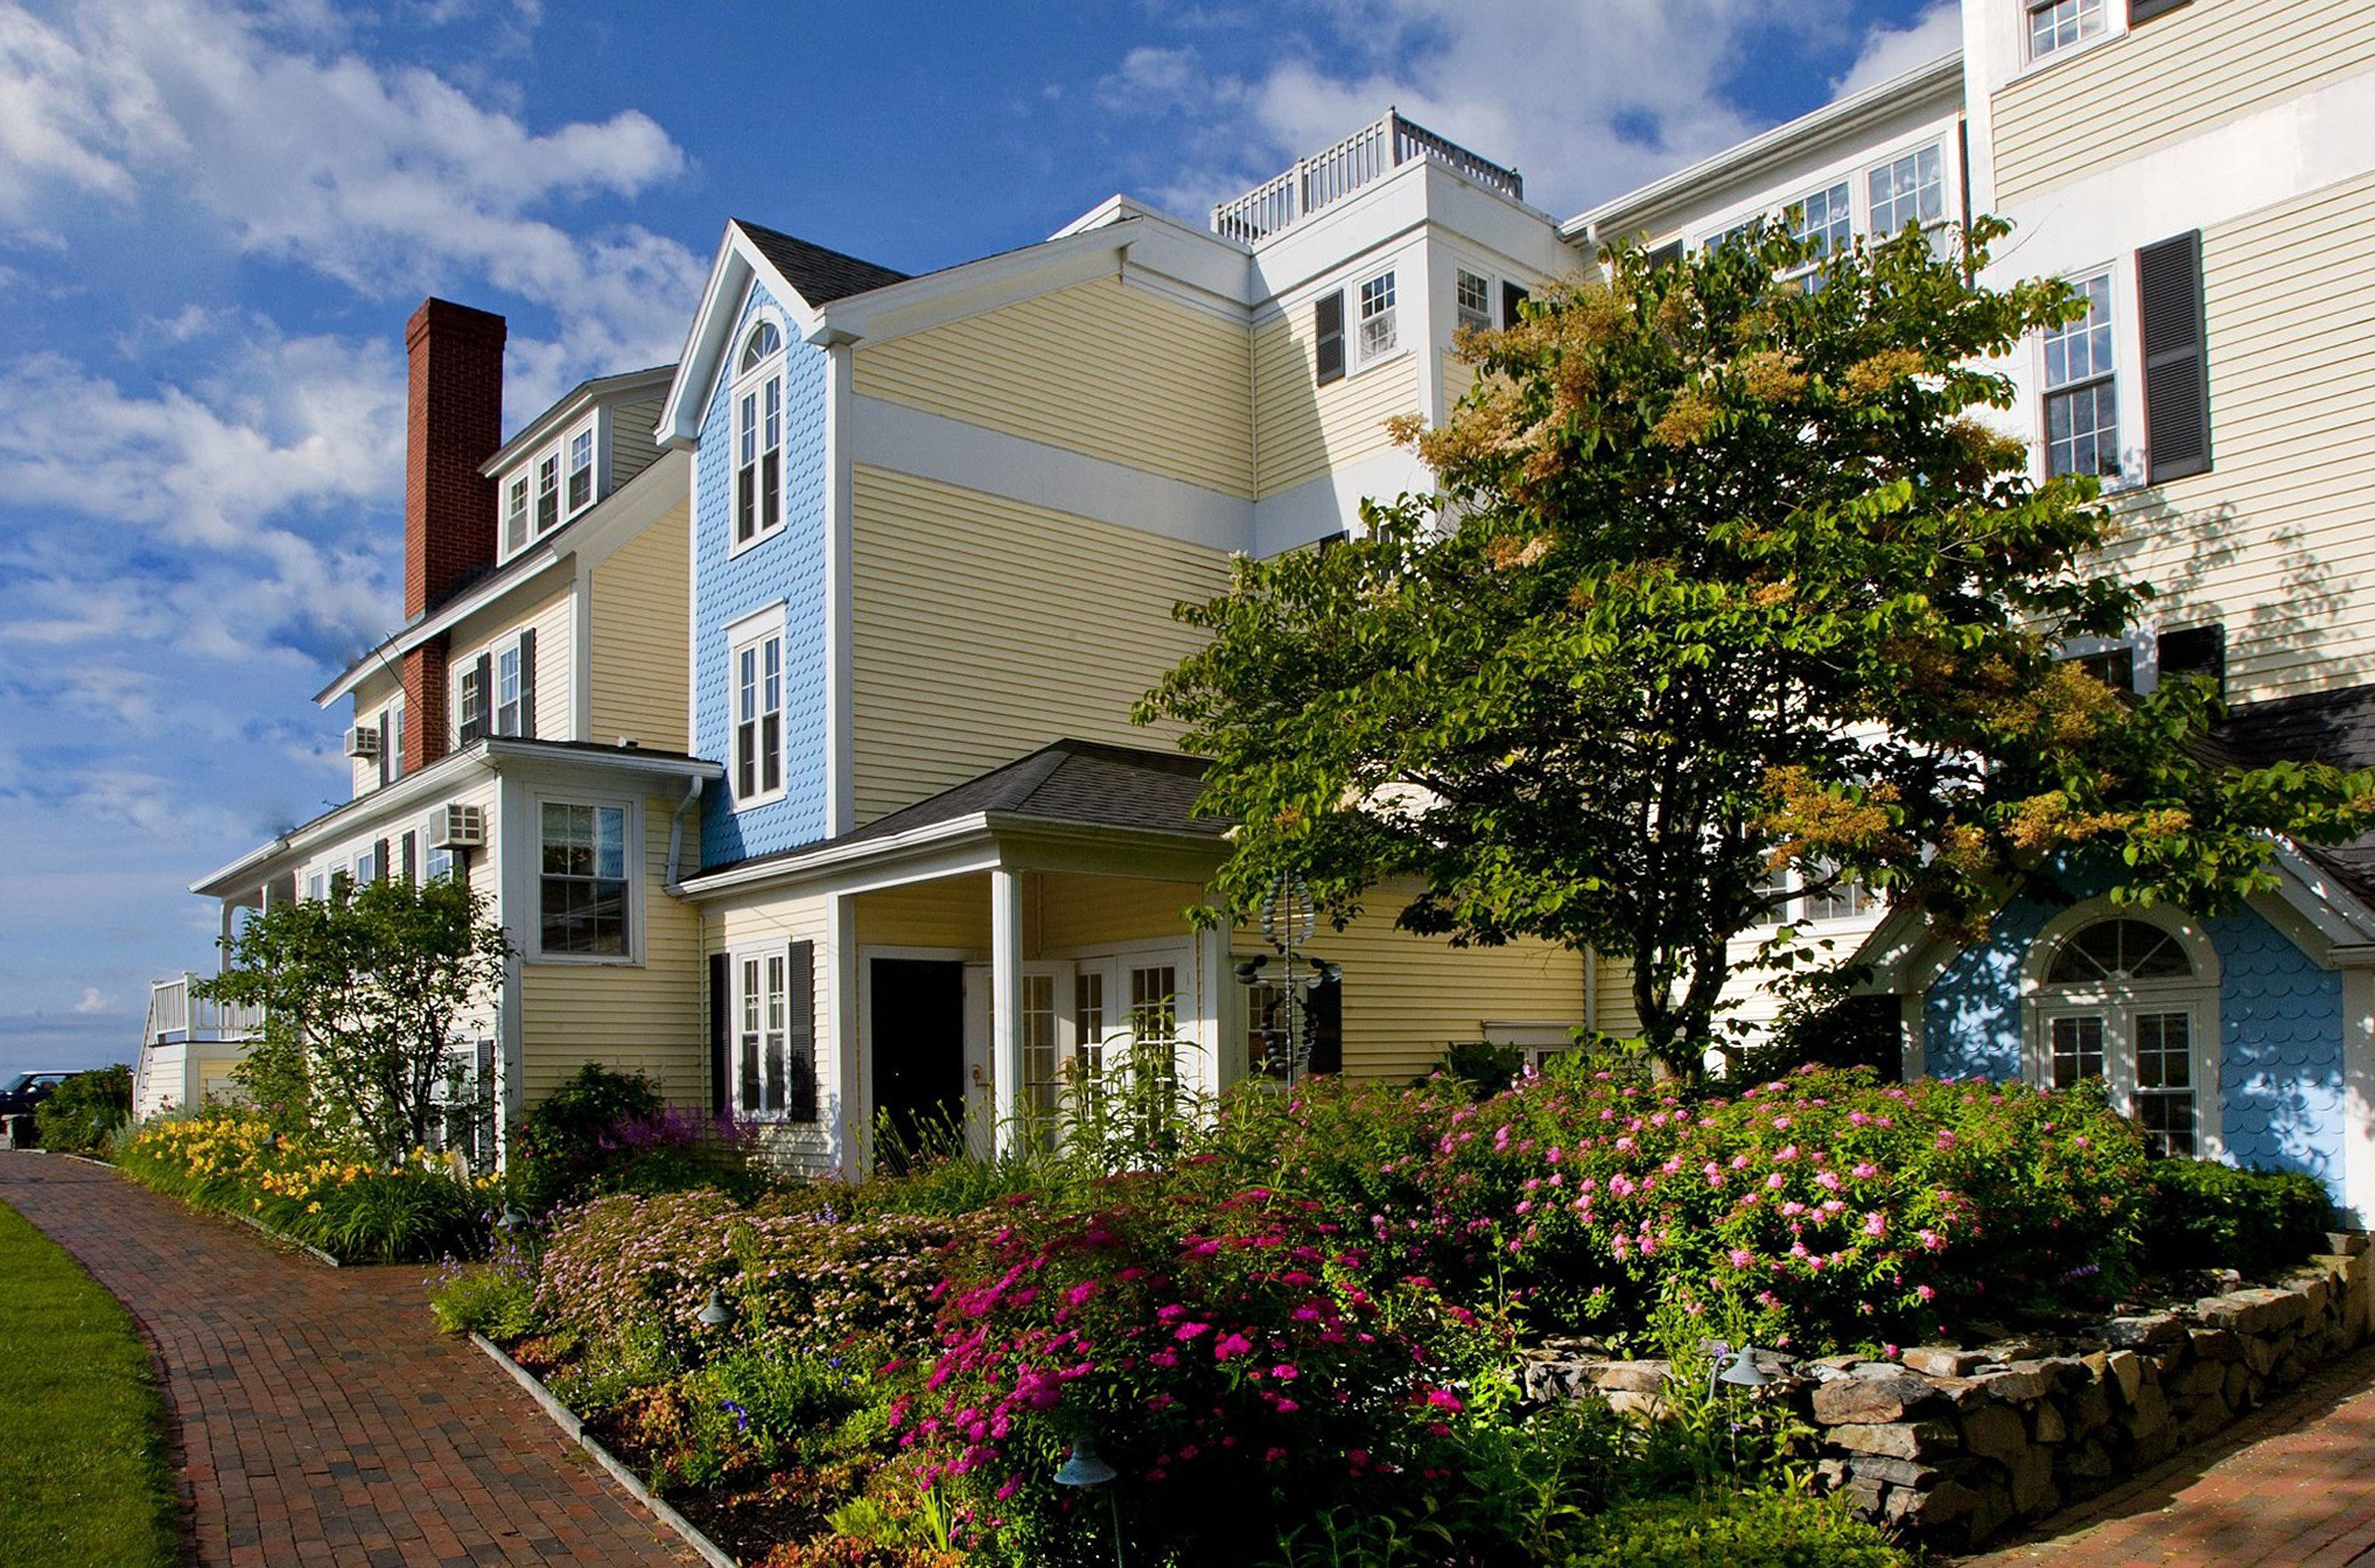 Country Exterior Hotels Inn building tree sky house property residential area neighbourhood home condominium suburb residential cottage Villa Garden stone